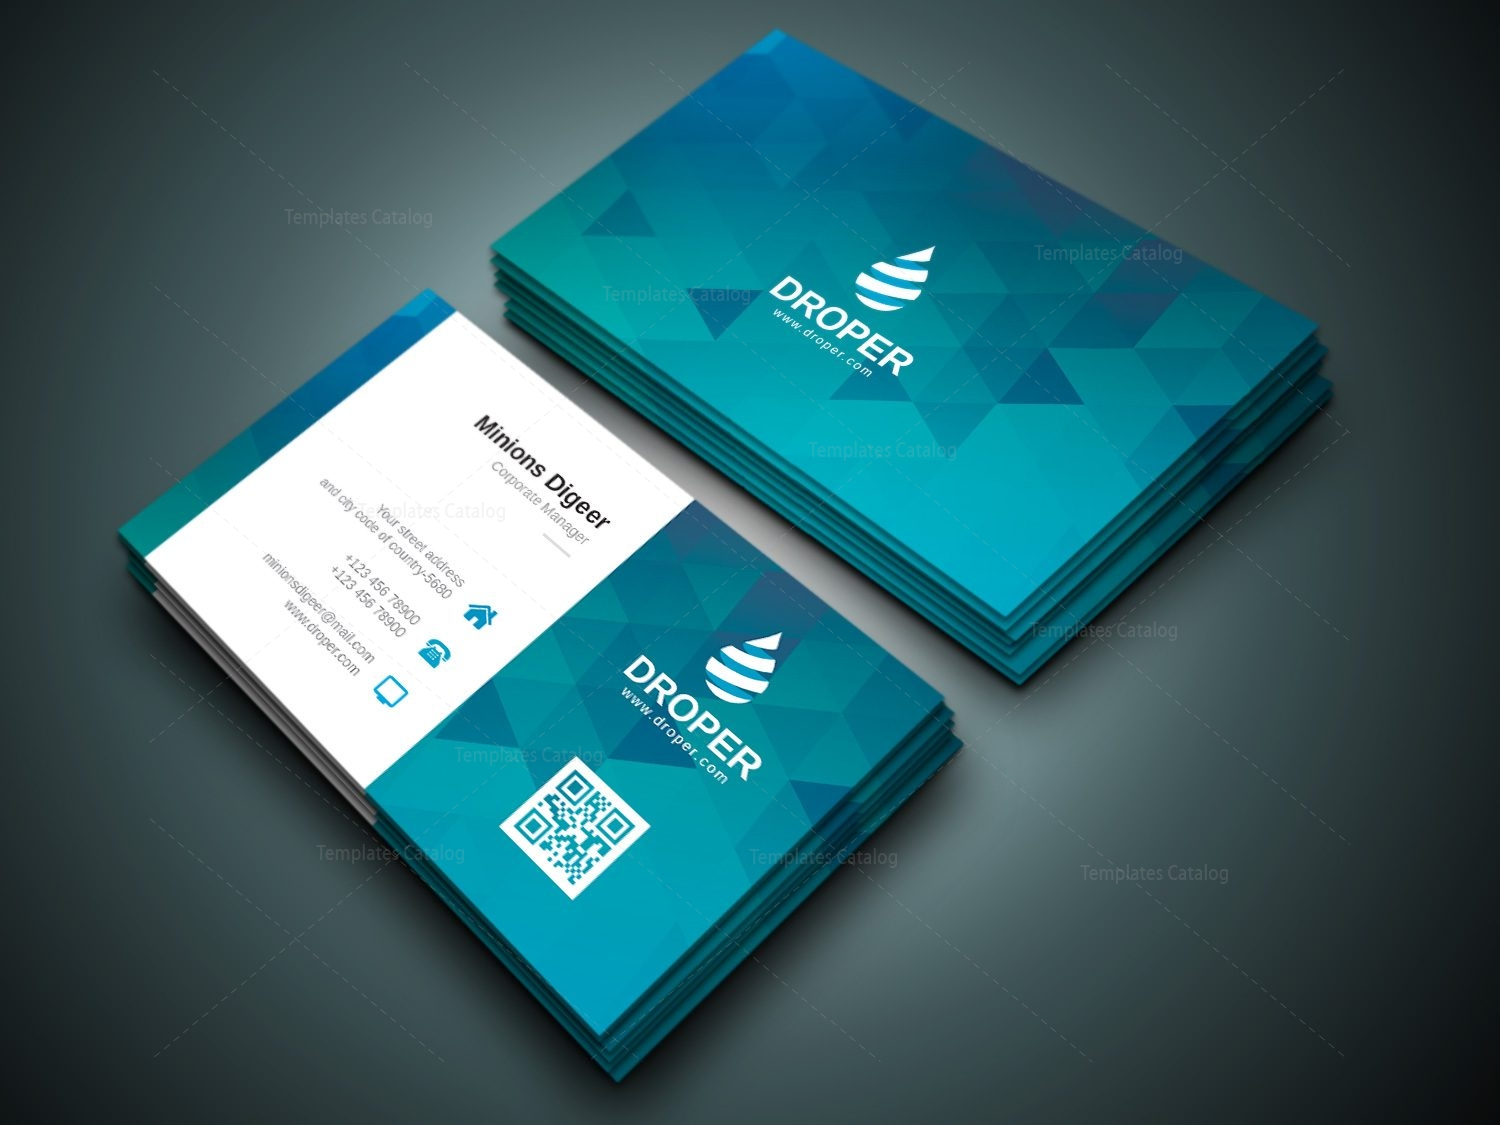 Shark professional corporate business card template 000941 shark professional corporate business card template cheaphphosting